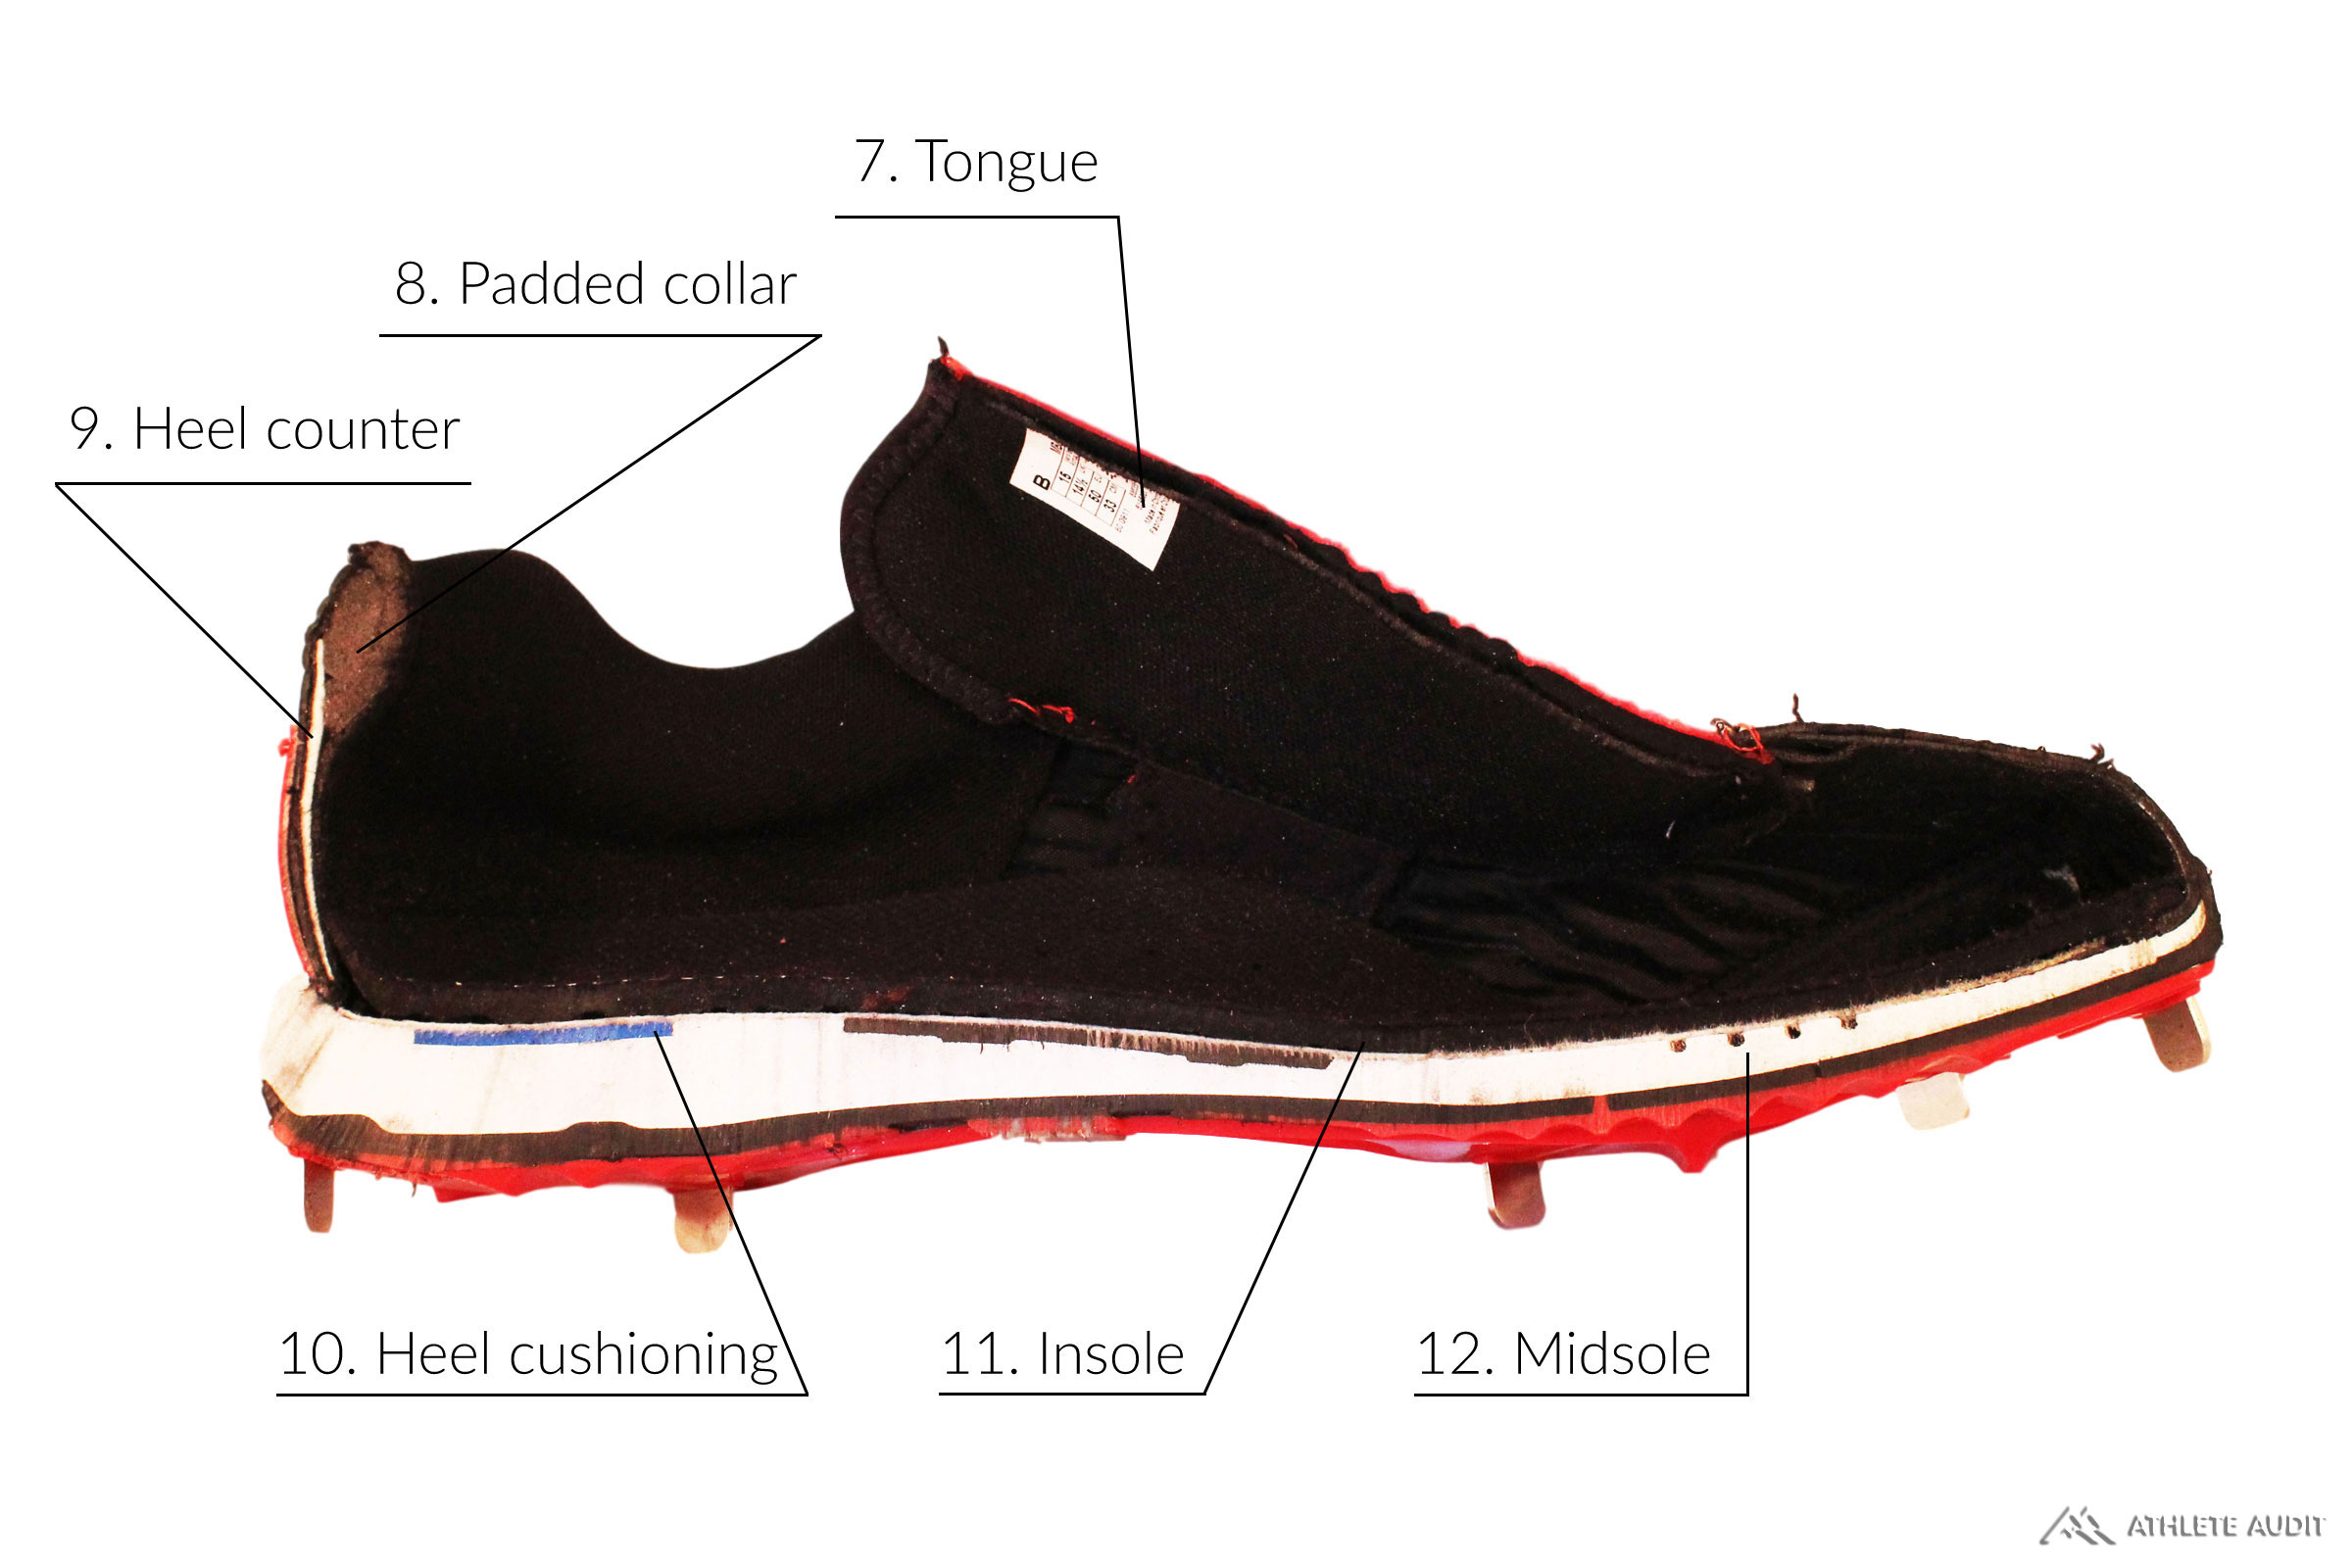 Parts of a Baseball Cleat - Inside - Anatomy of an Athletic Shoe - Athlete Audit